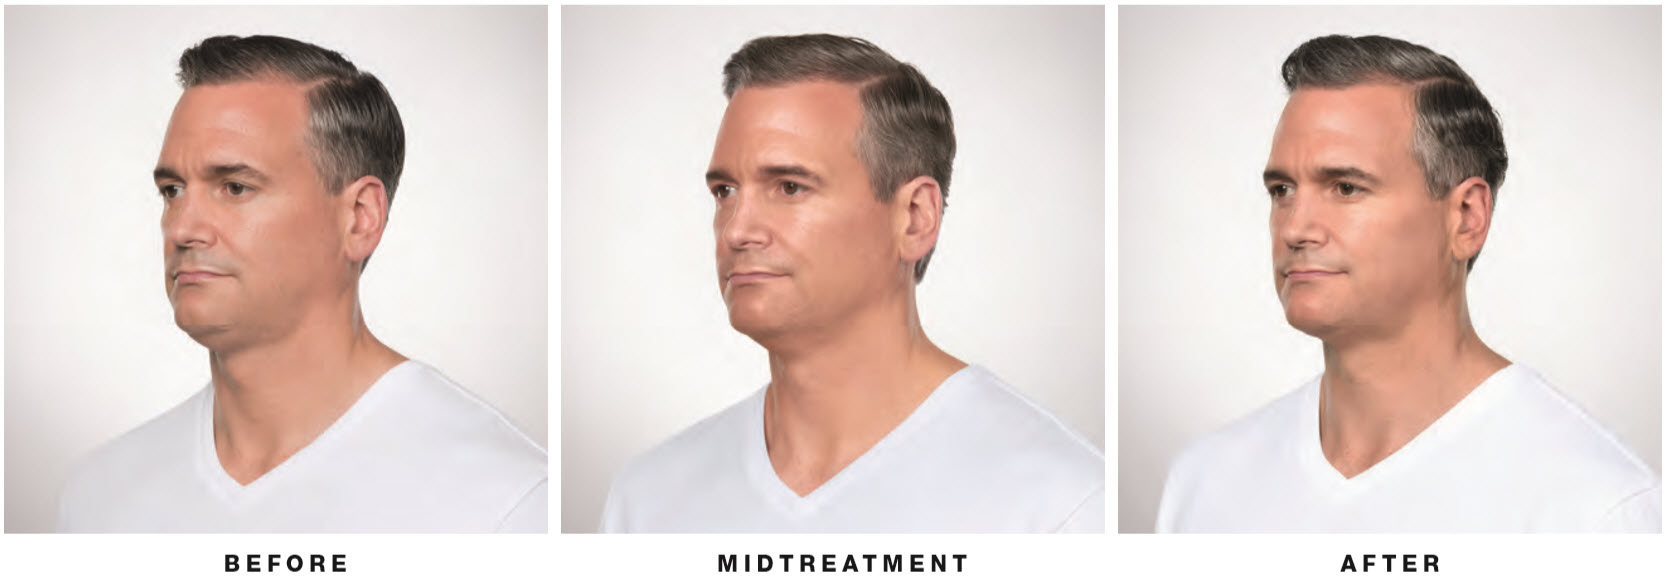 kybella-man-side-lake-norman-aesthetics-concierge-med-spa-laser-center-mooresville-nc-28117